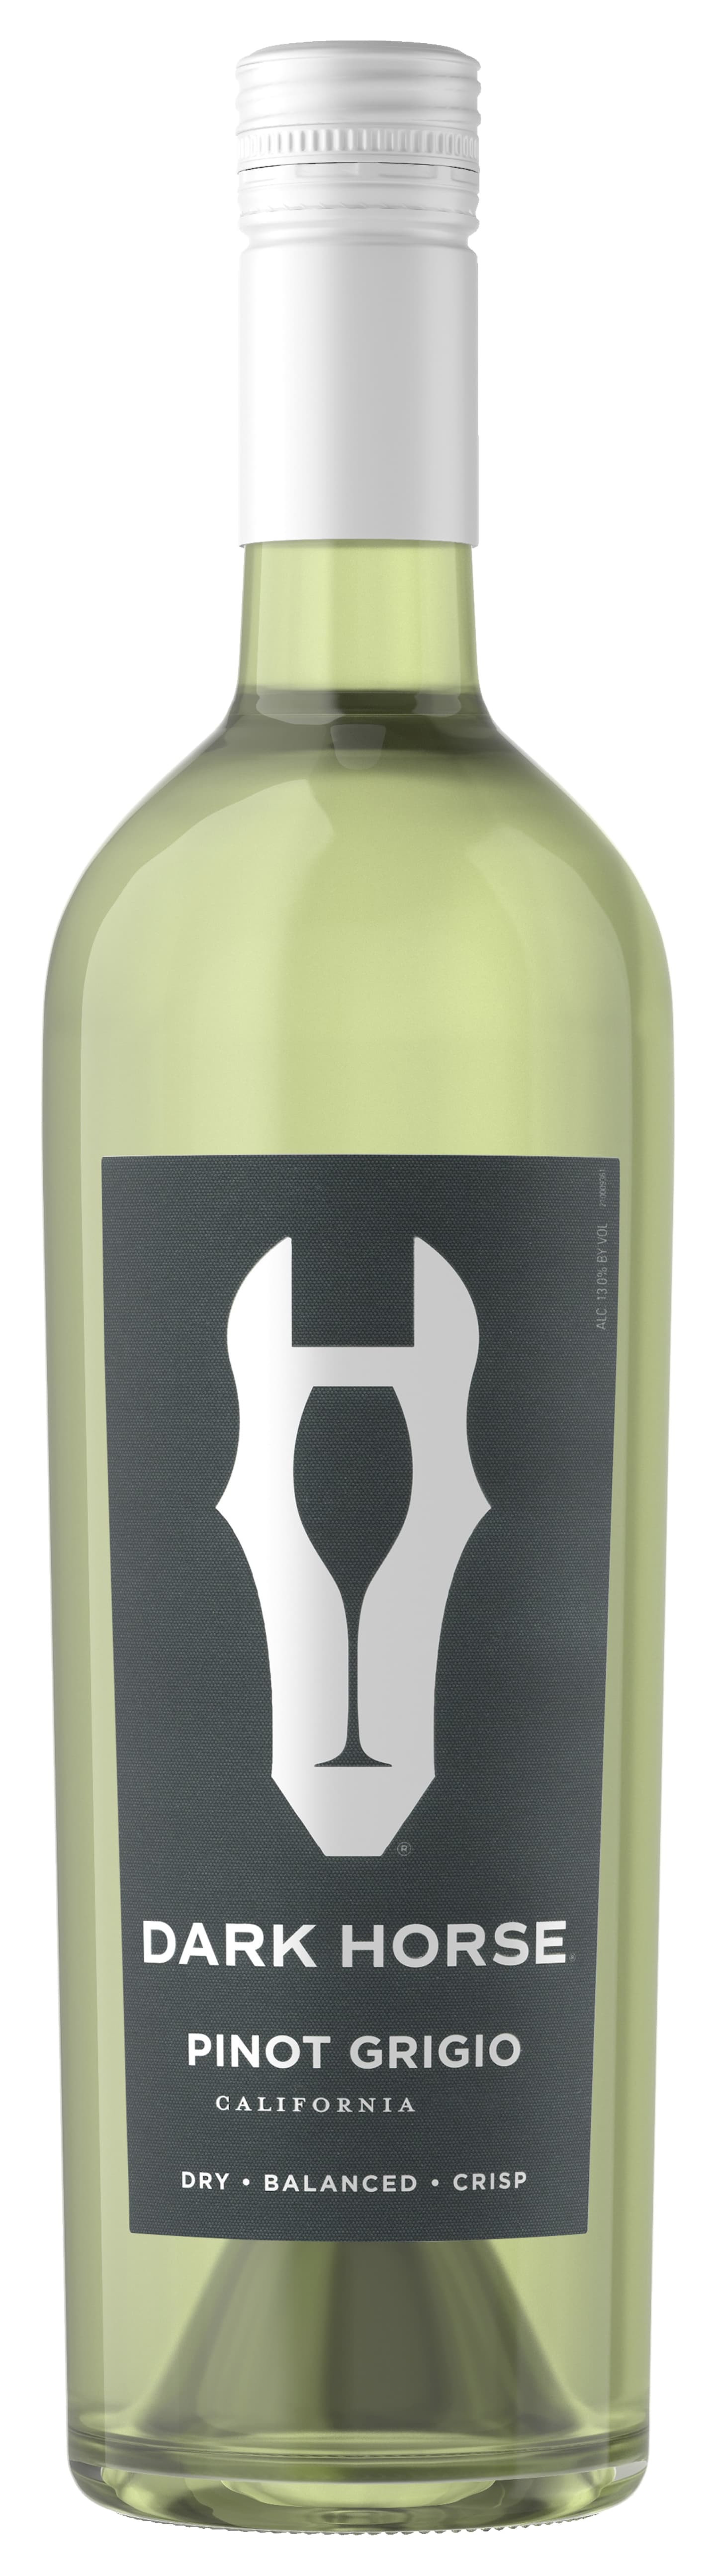 Dark Horse Pinot Grigio 750ml NV